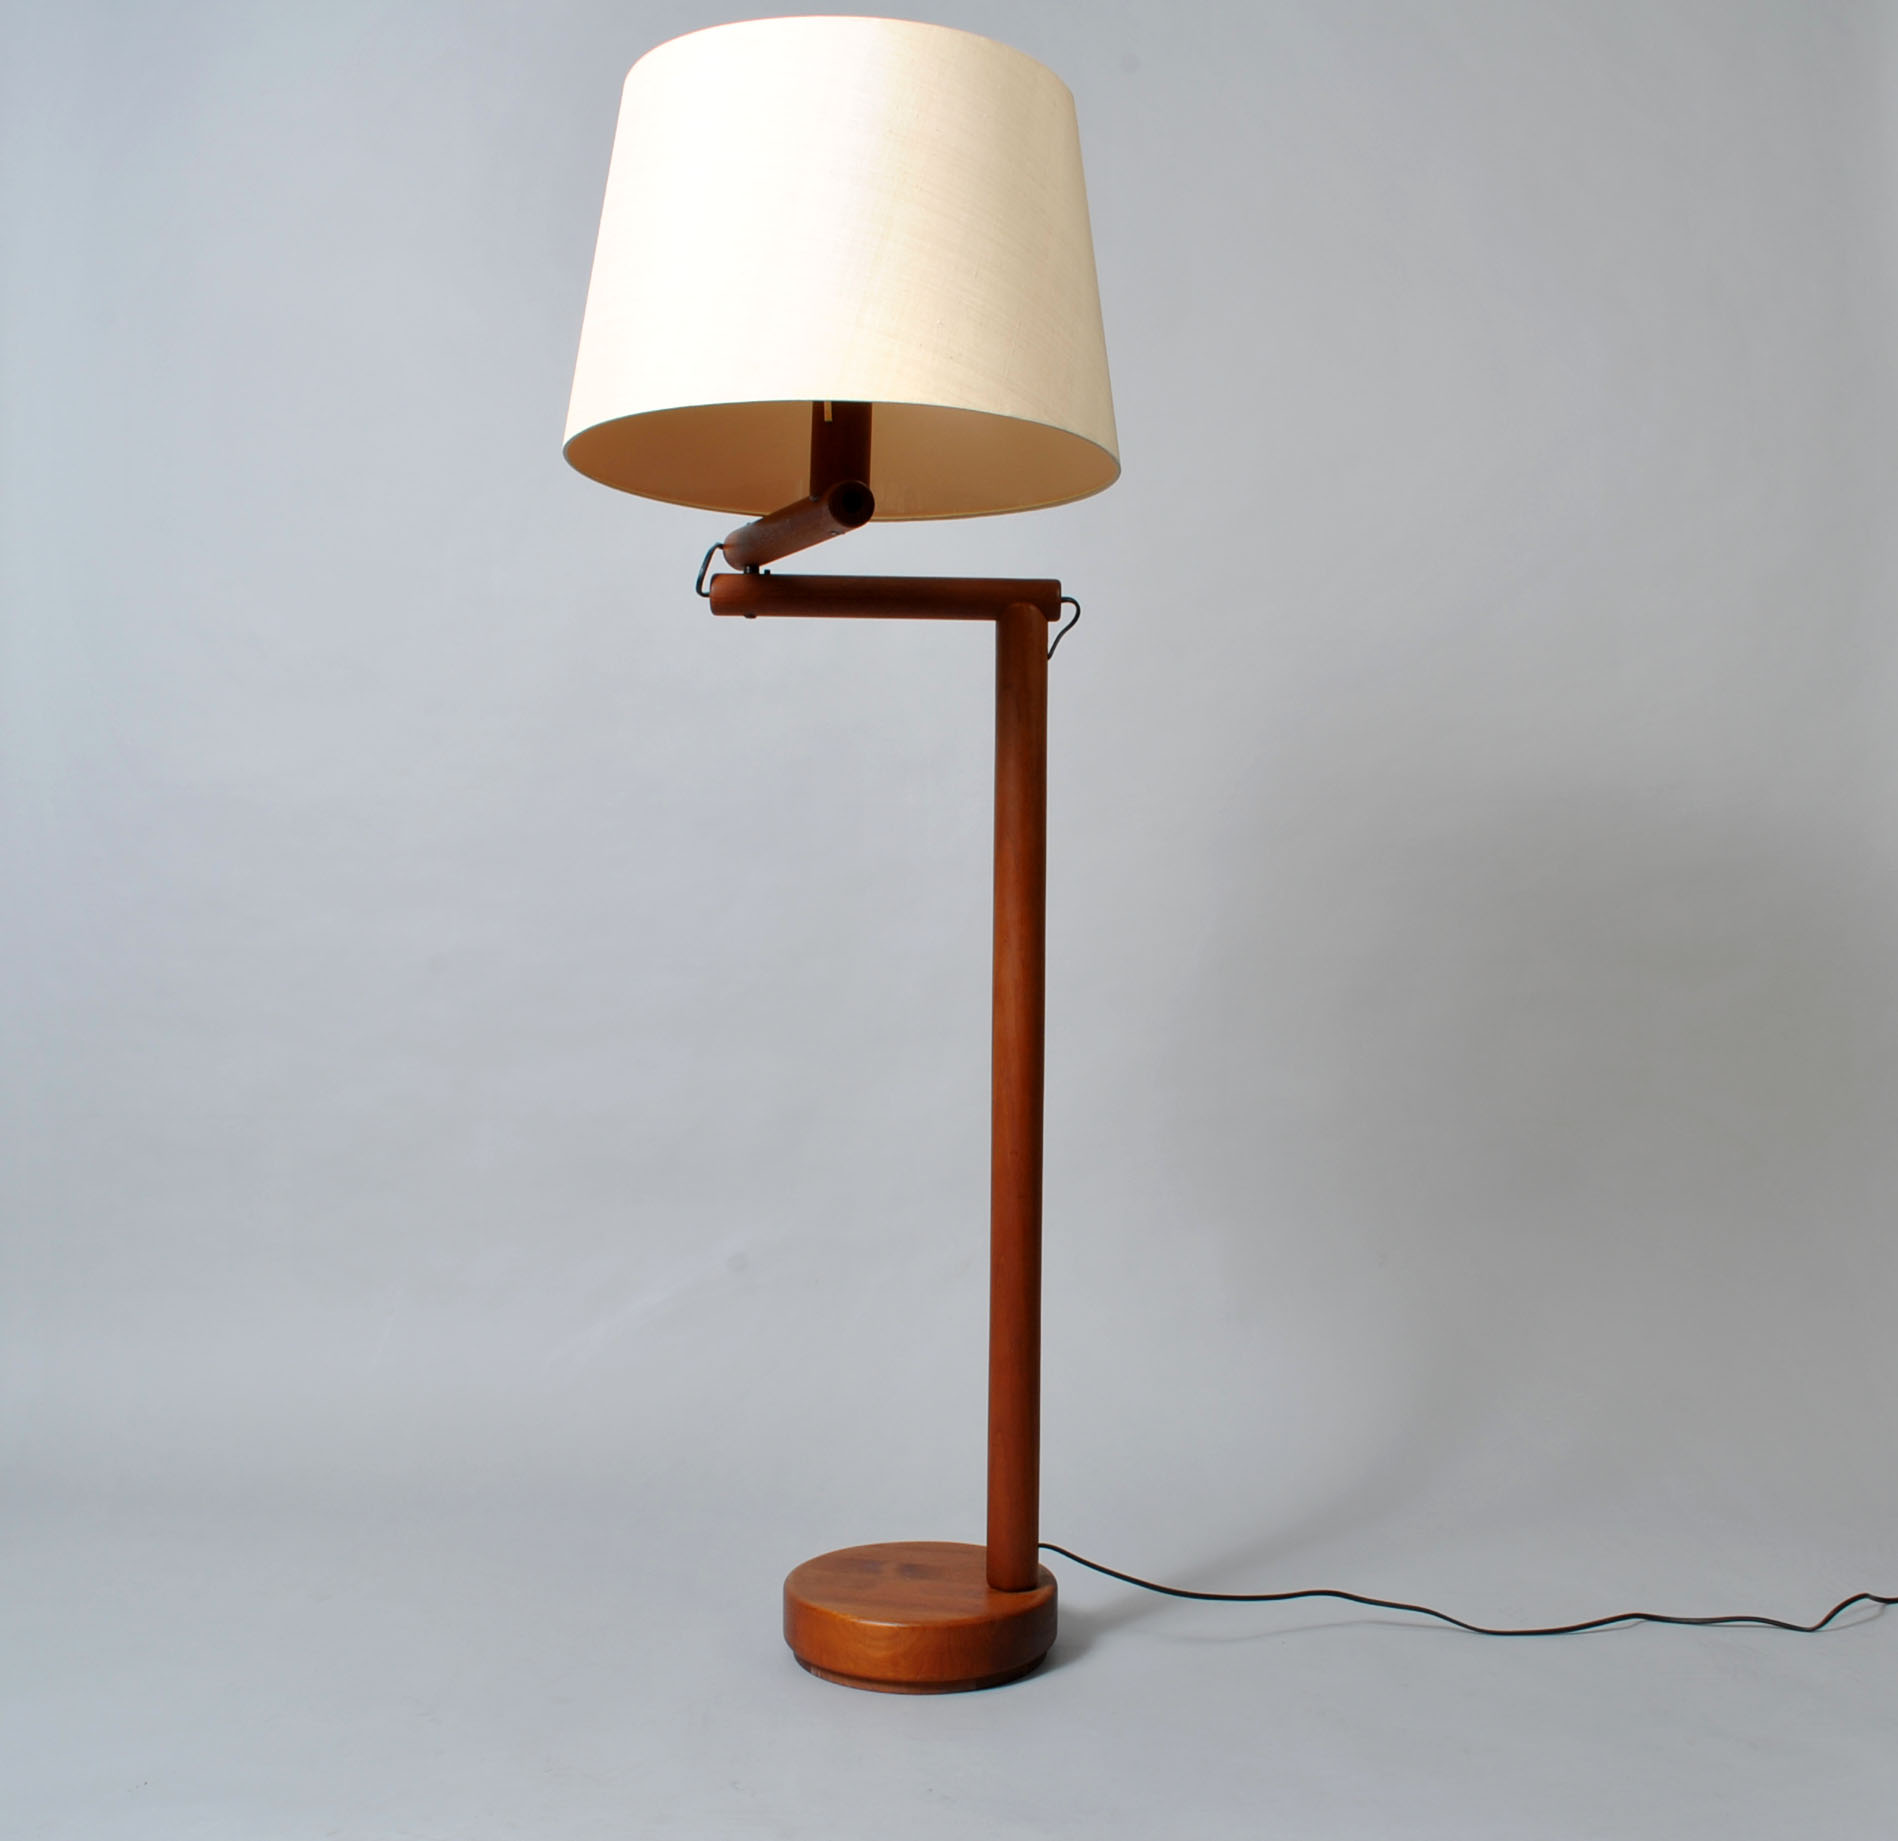 Midcentury Danish teak floor lamp